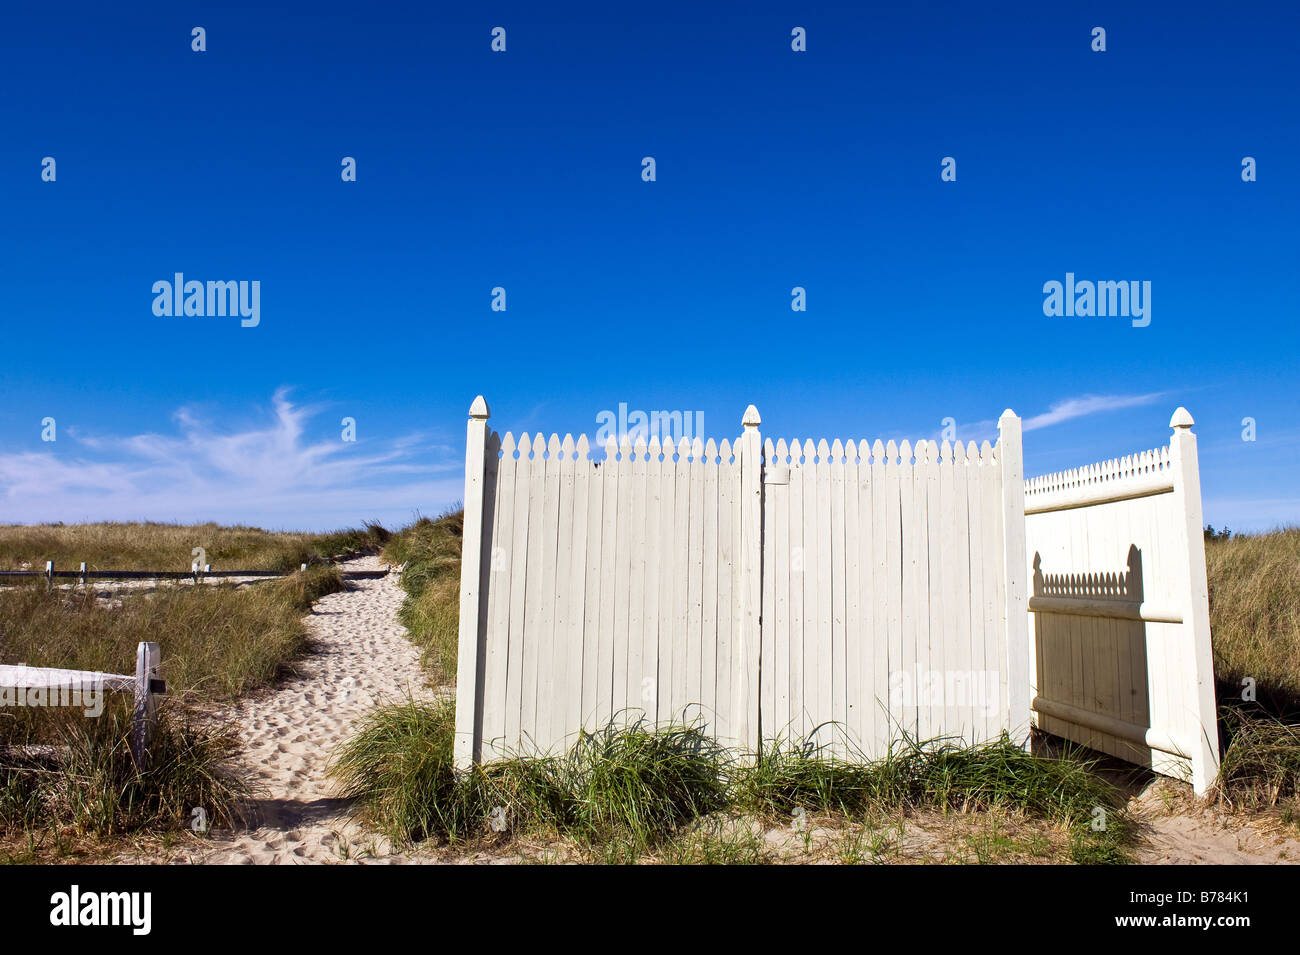 Dune path leading to the beach and public bathroom, Crosby Beach, Brewster, Cape Cod, Massachusetts, USA - Stock Image